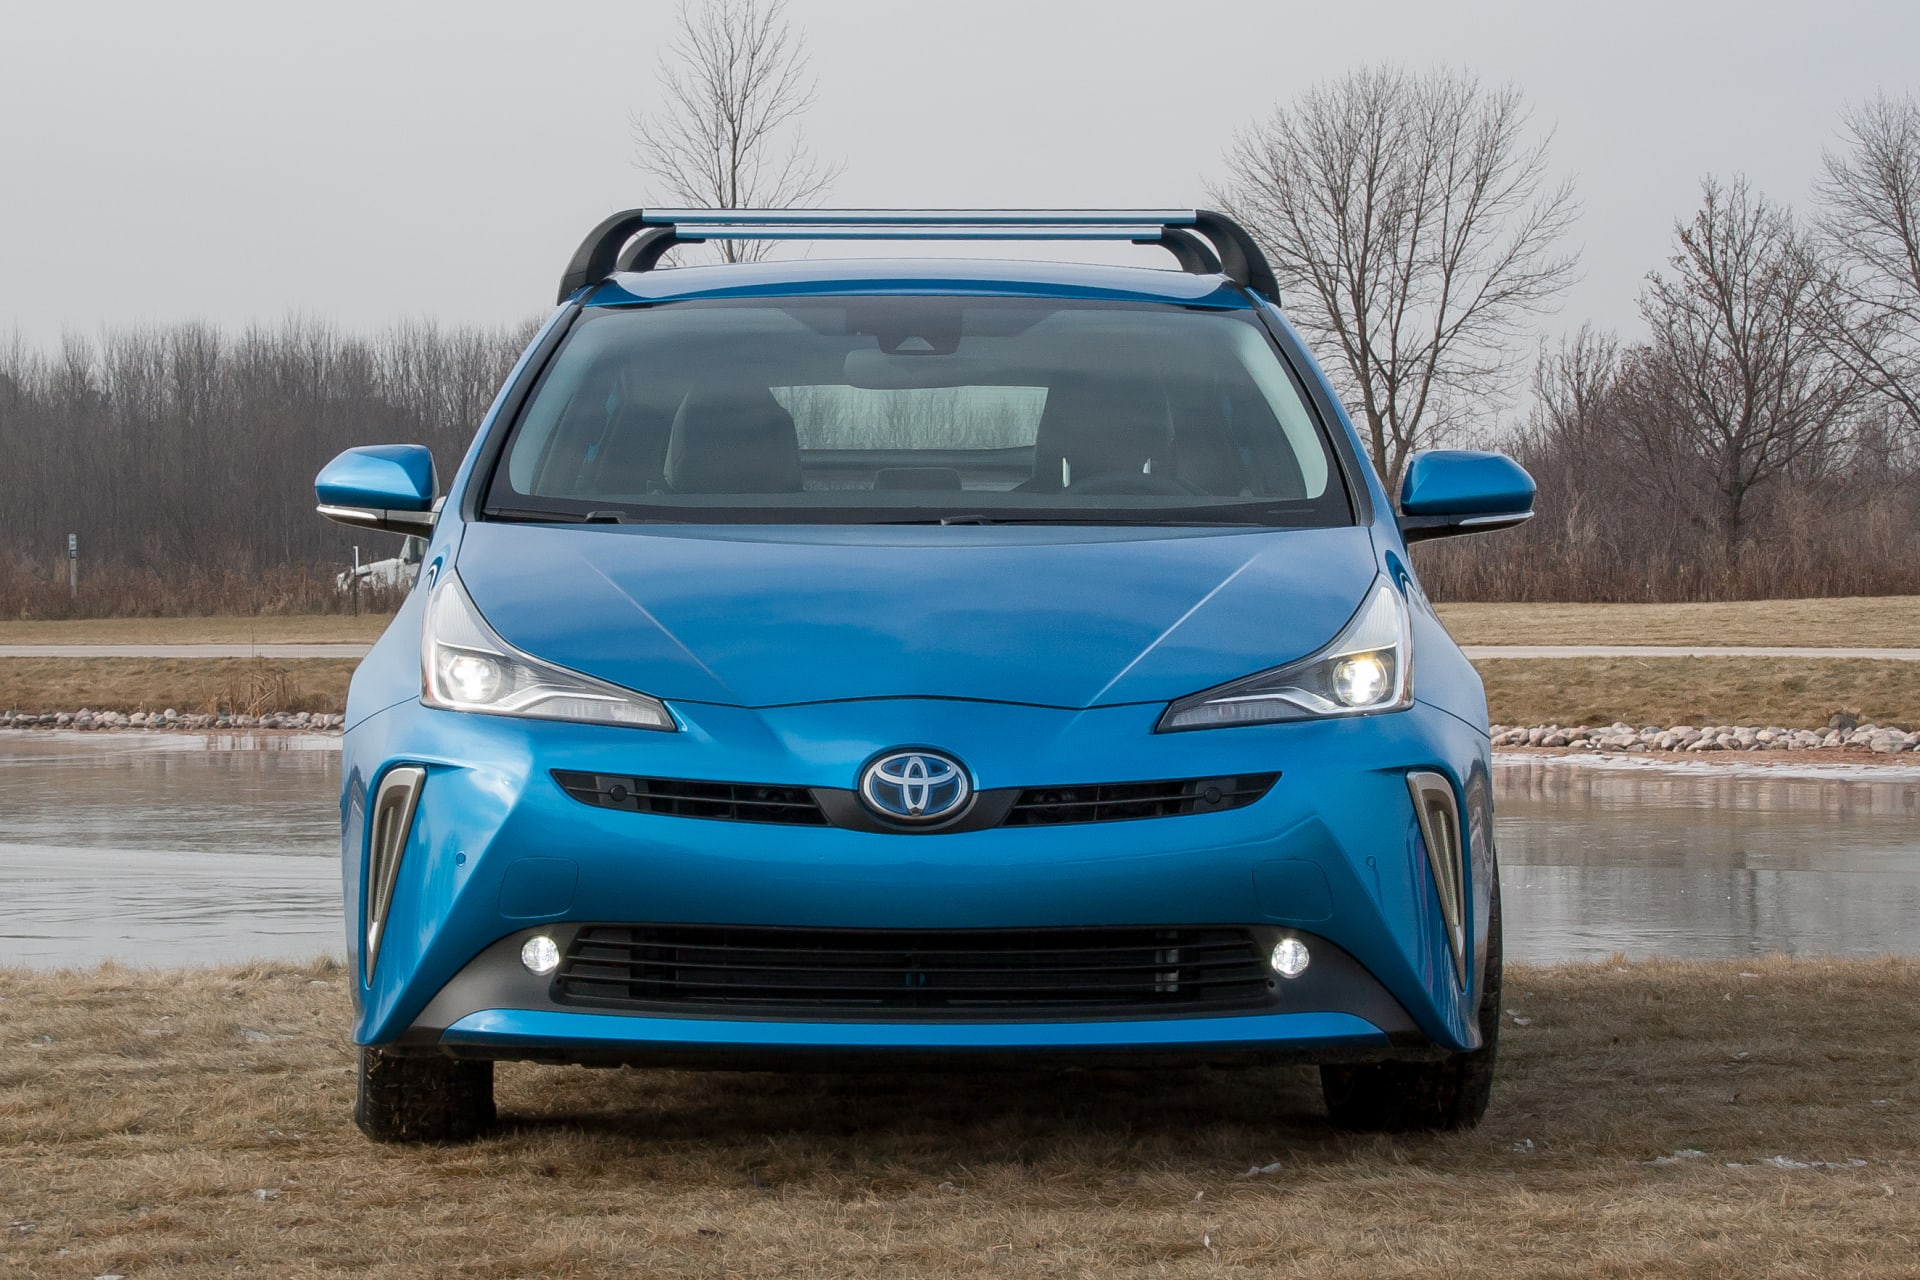 2019-2020 Toyota Prius: Everything You Need to Know